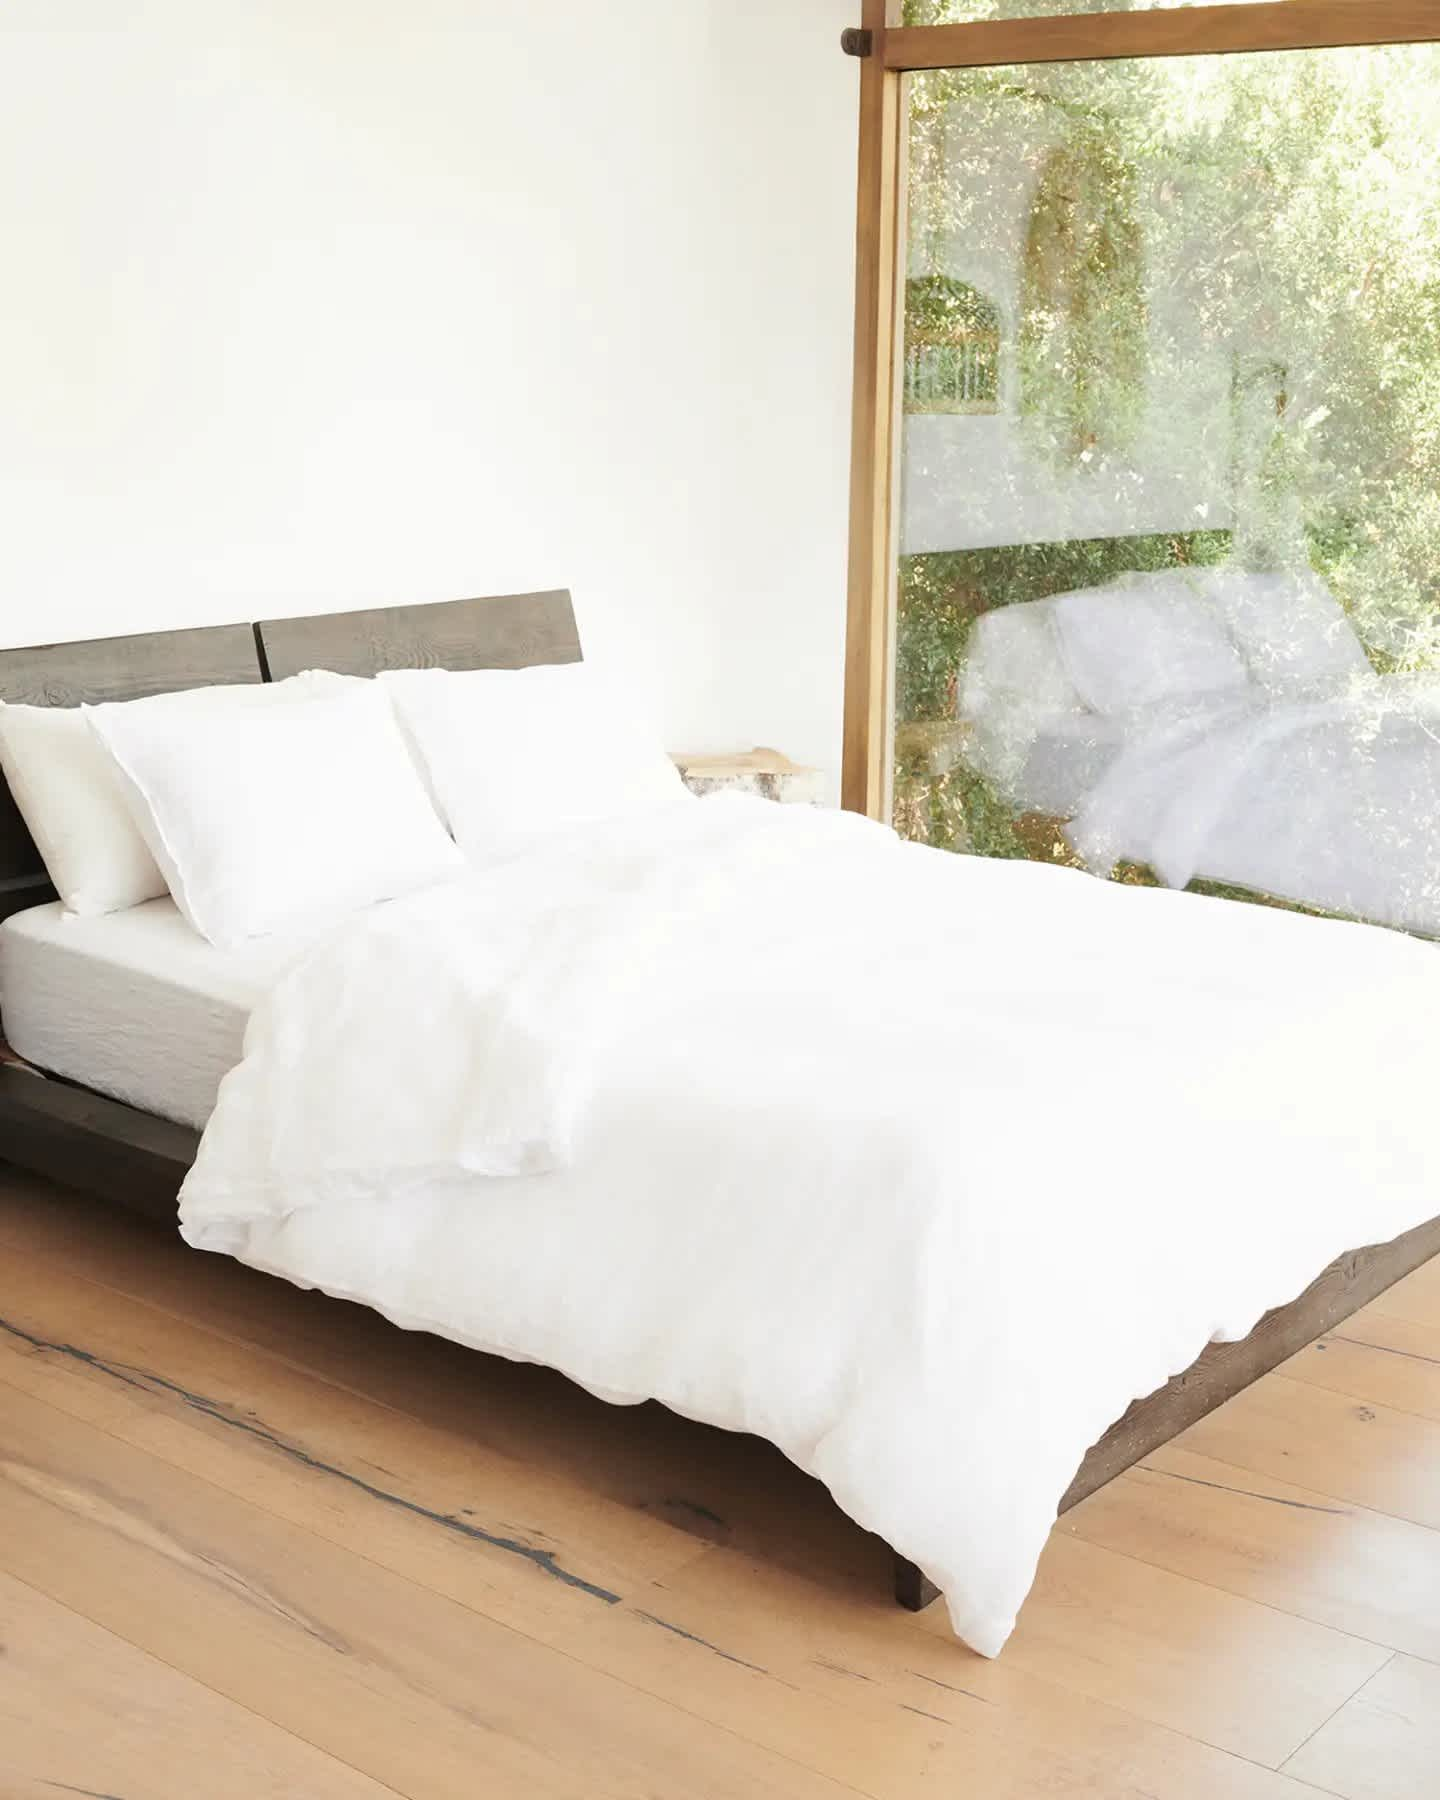 Linen duvet cover set on bed